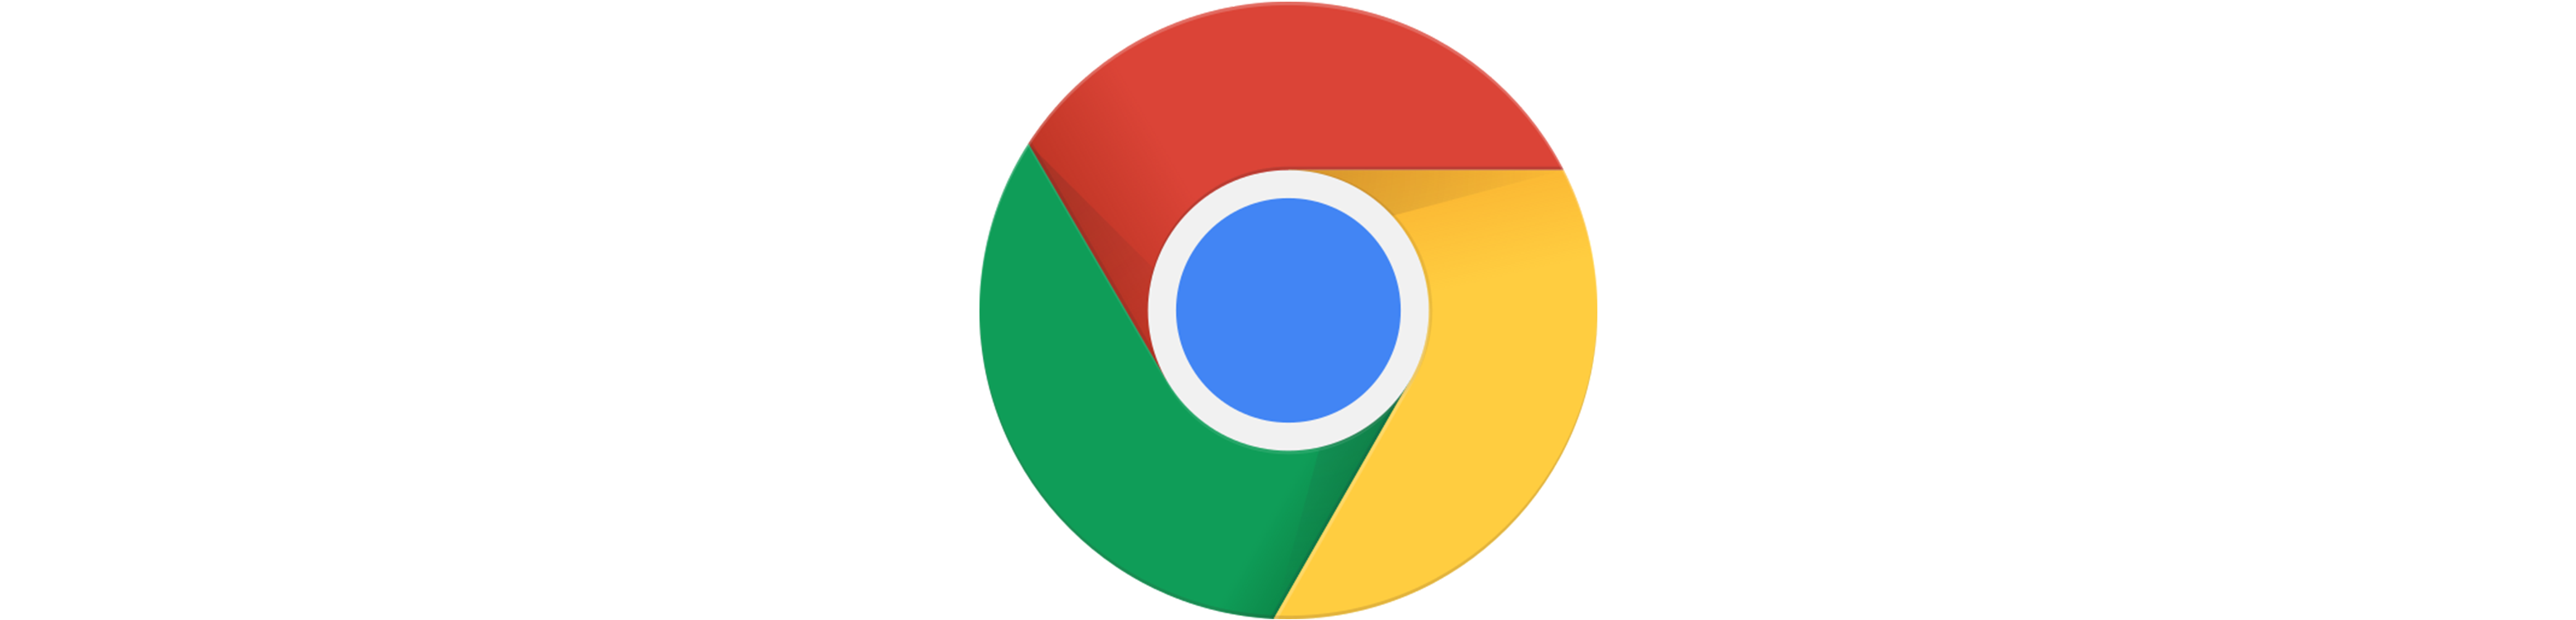 como abrir pestana incognito chrome